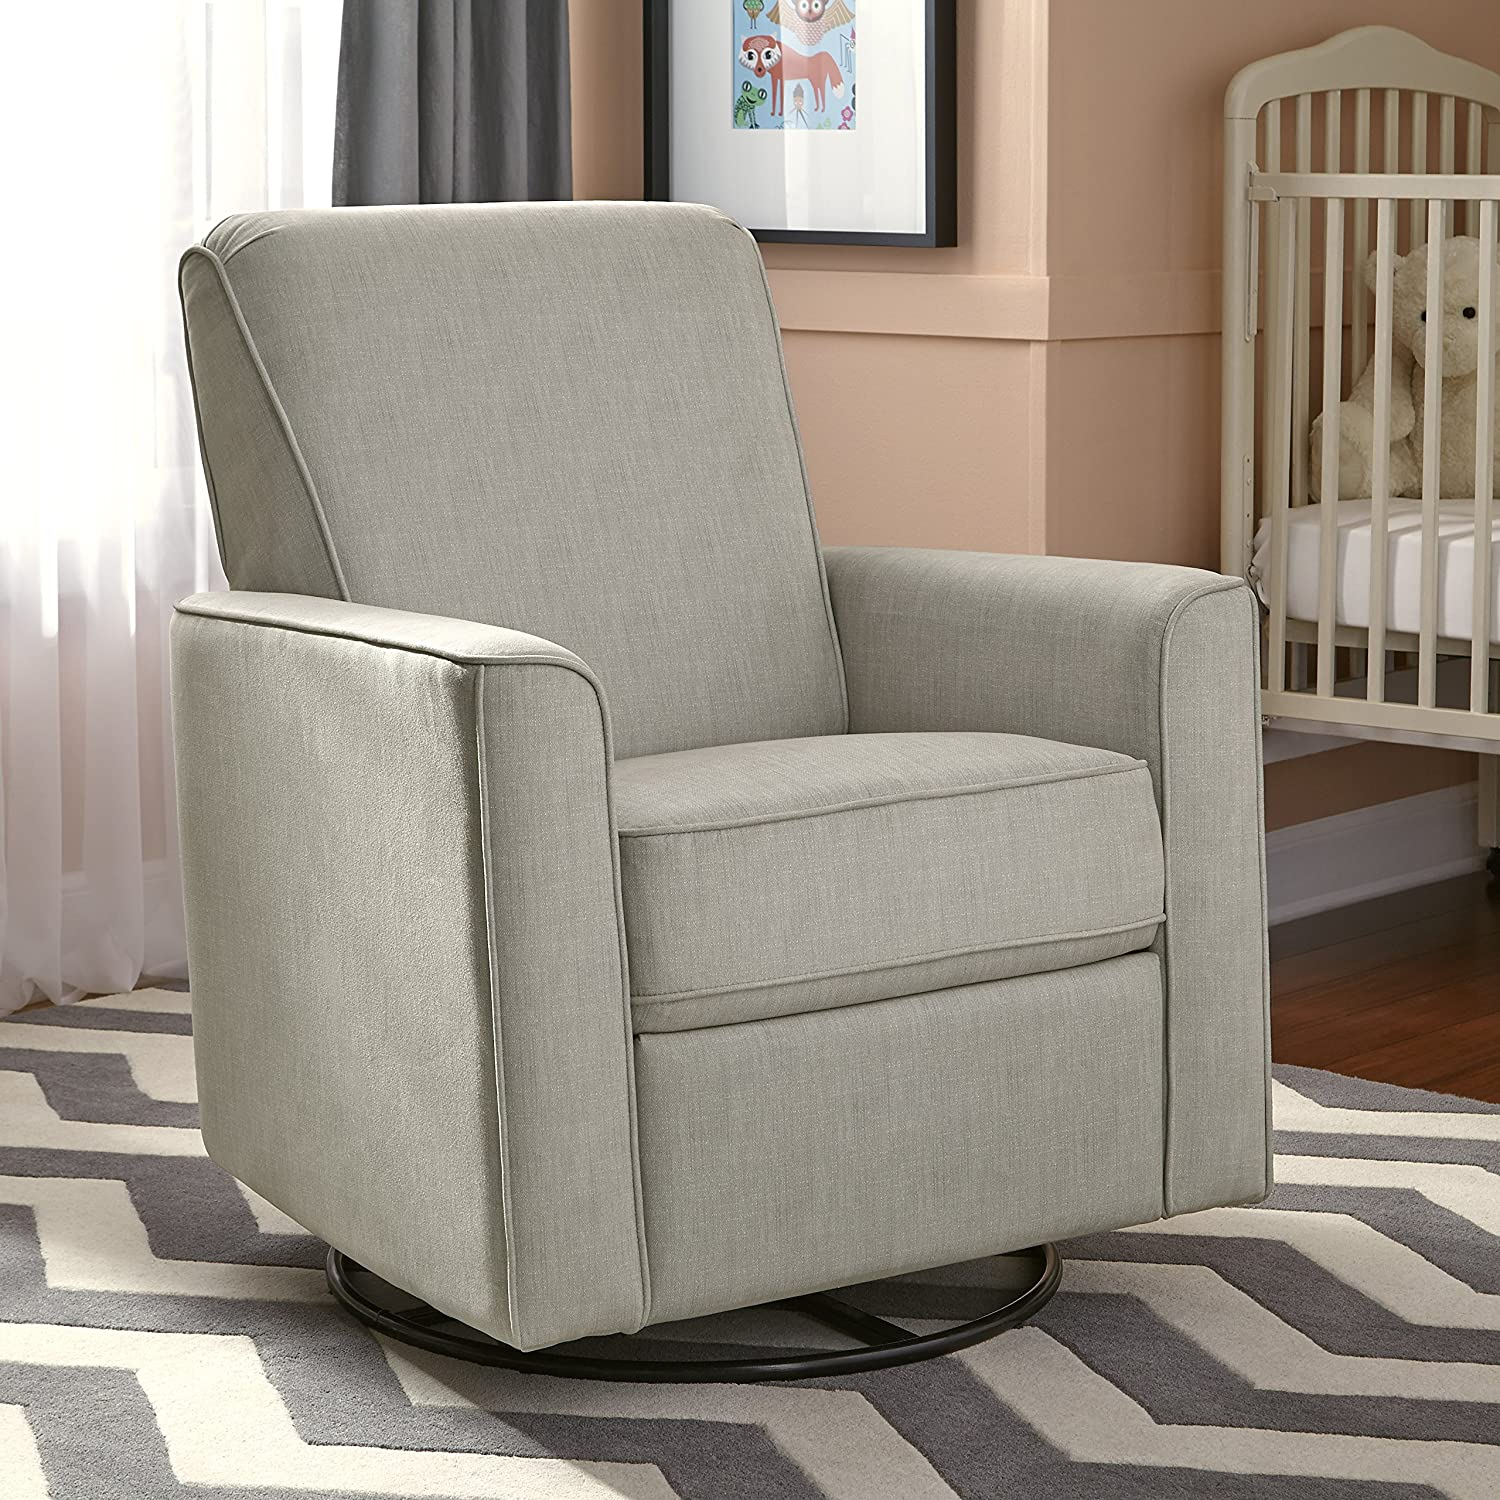 minneapolis by dk chair mommy bodacious glidersbaby dining catchy rockers a nursery update rocker sale for rocking diy target glider